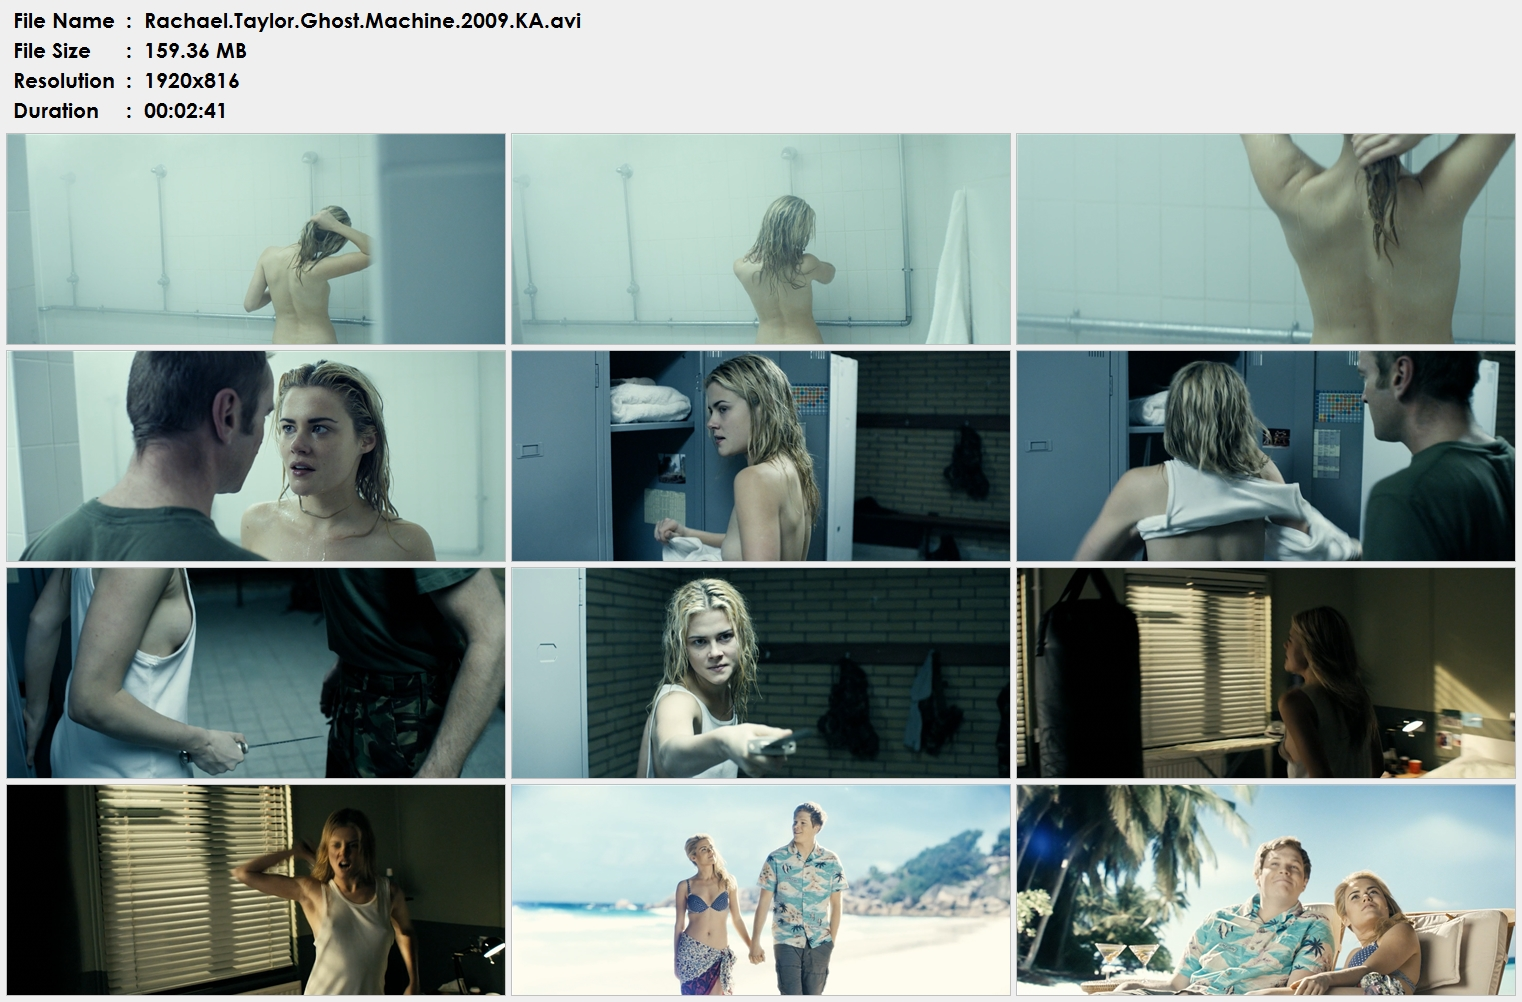 Rachael.Taylor.Ghost.Machine.2009.KA.avi